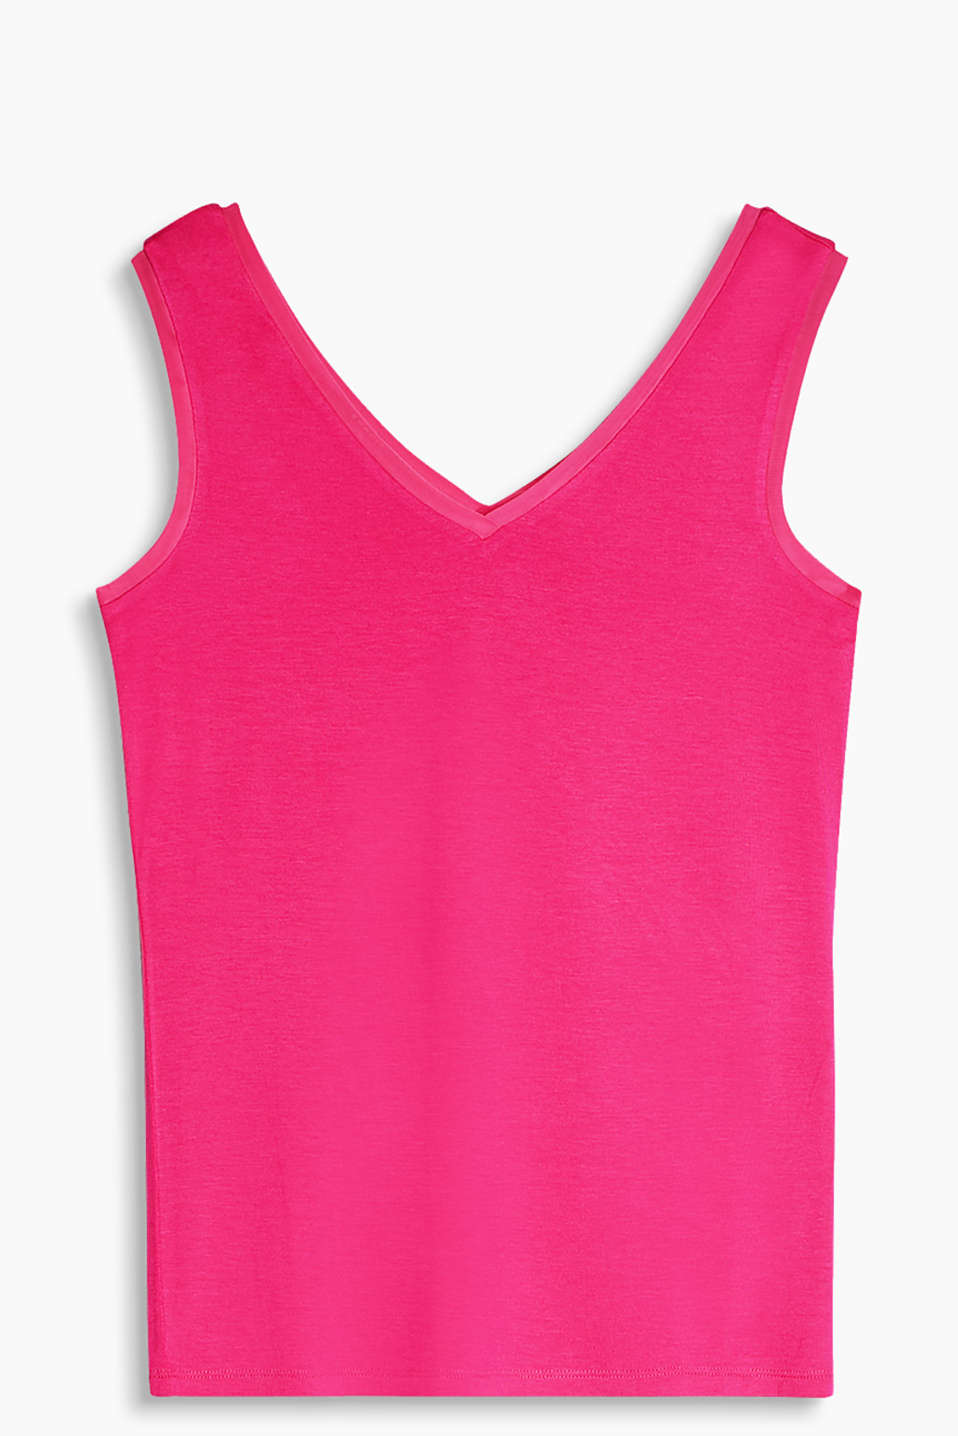 Flowing jersey top with a double V-neck and mesh trims